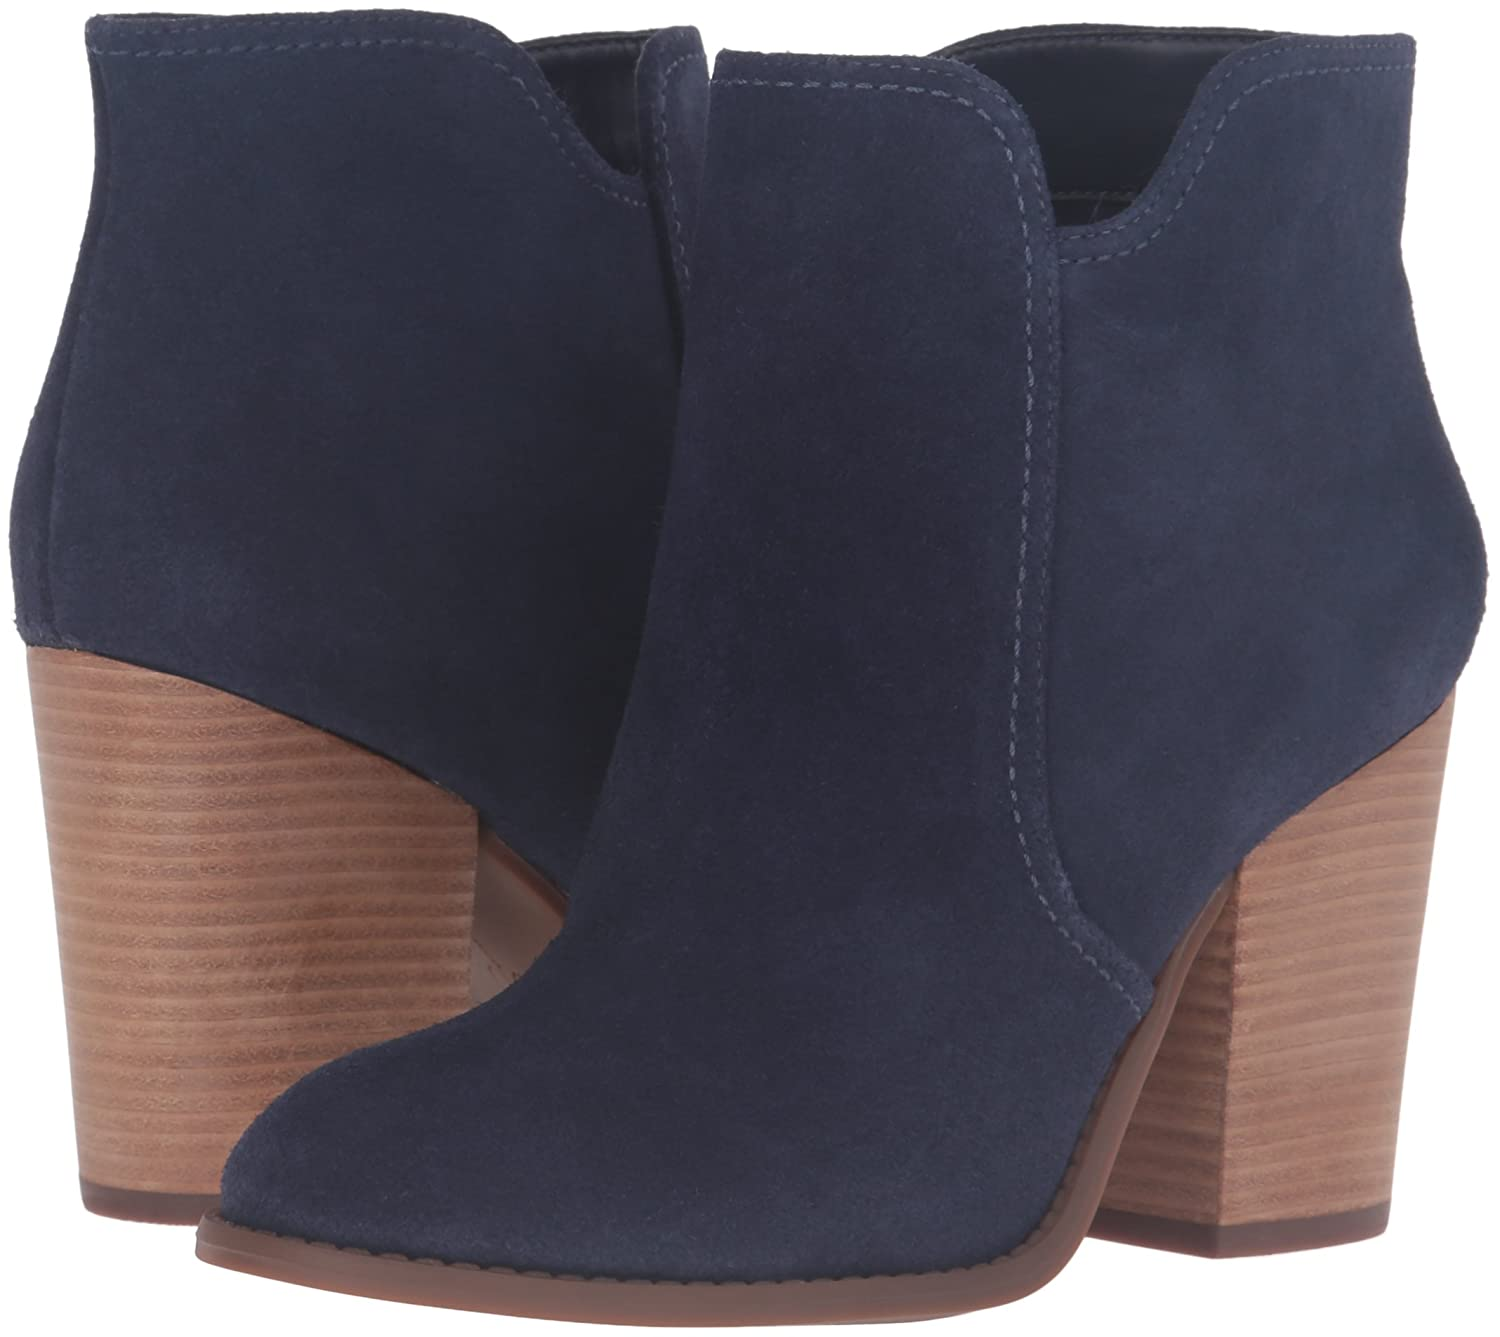 Jessica Simpson Women's Sadora Ankle Bootie B01HN88WG0 9 B(M) US|Dark Midnight